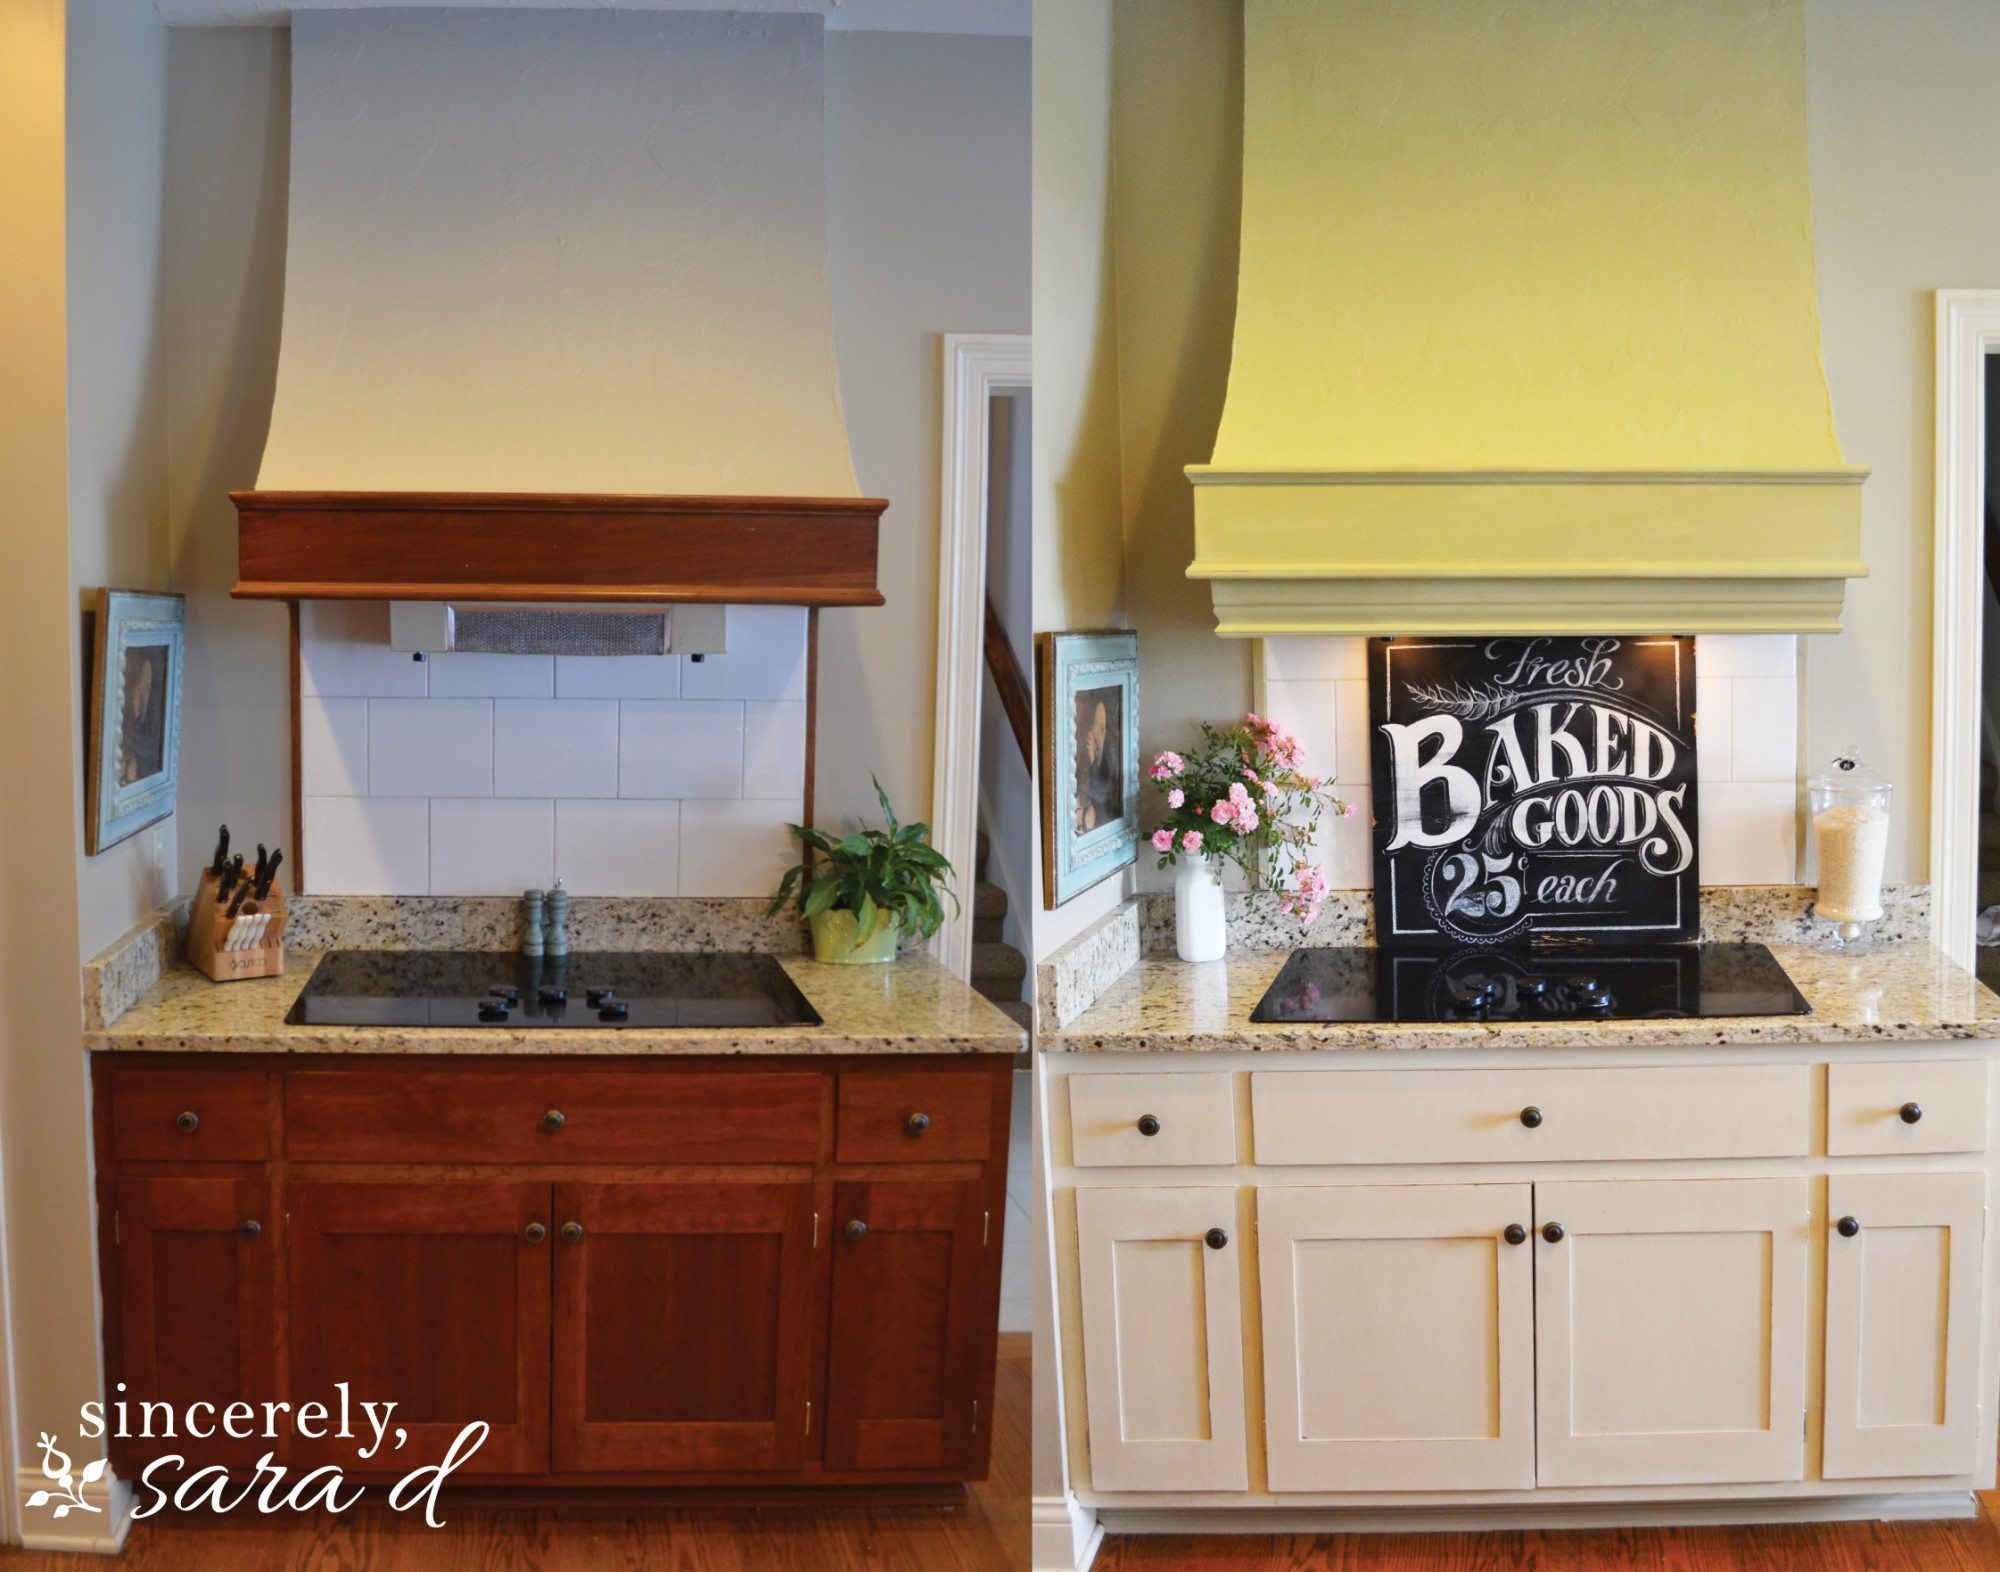 painting kitchen cabinets with chalk paint update - sincerely, sara d.